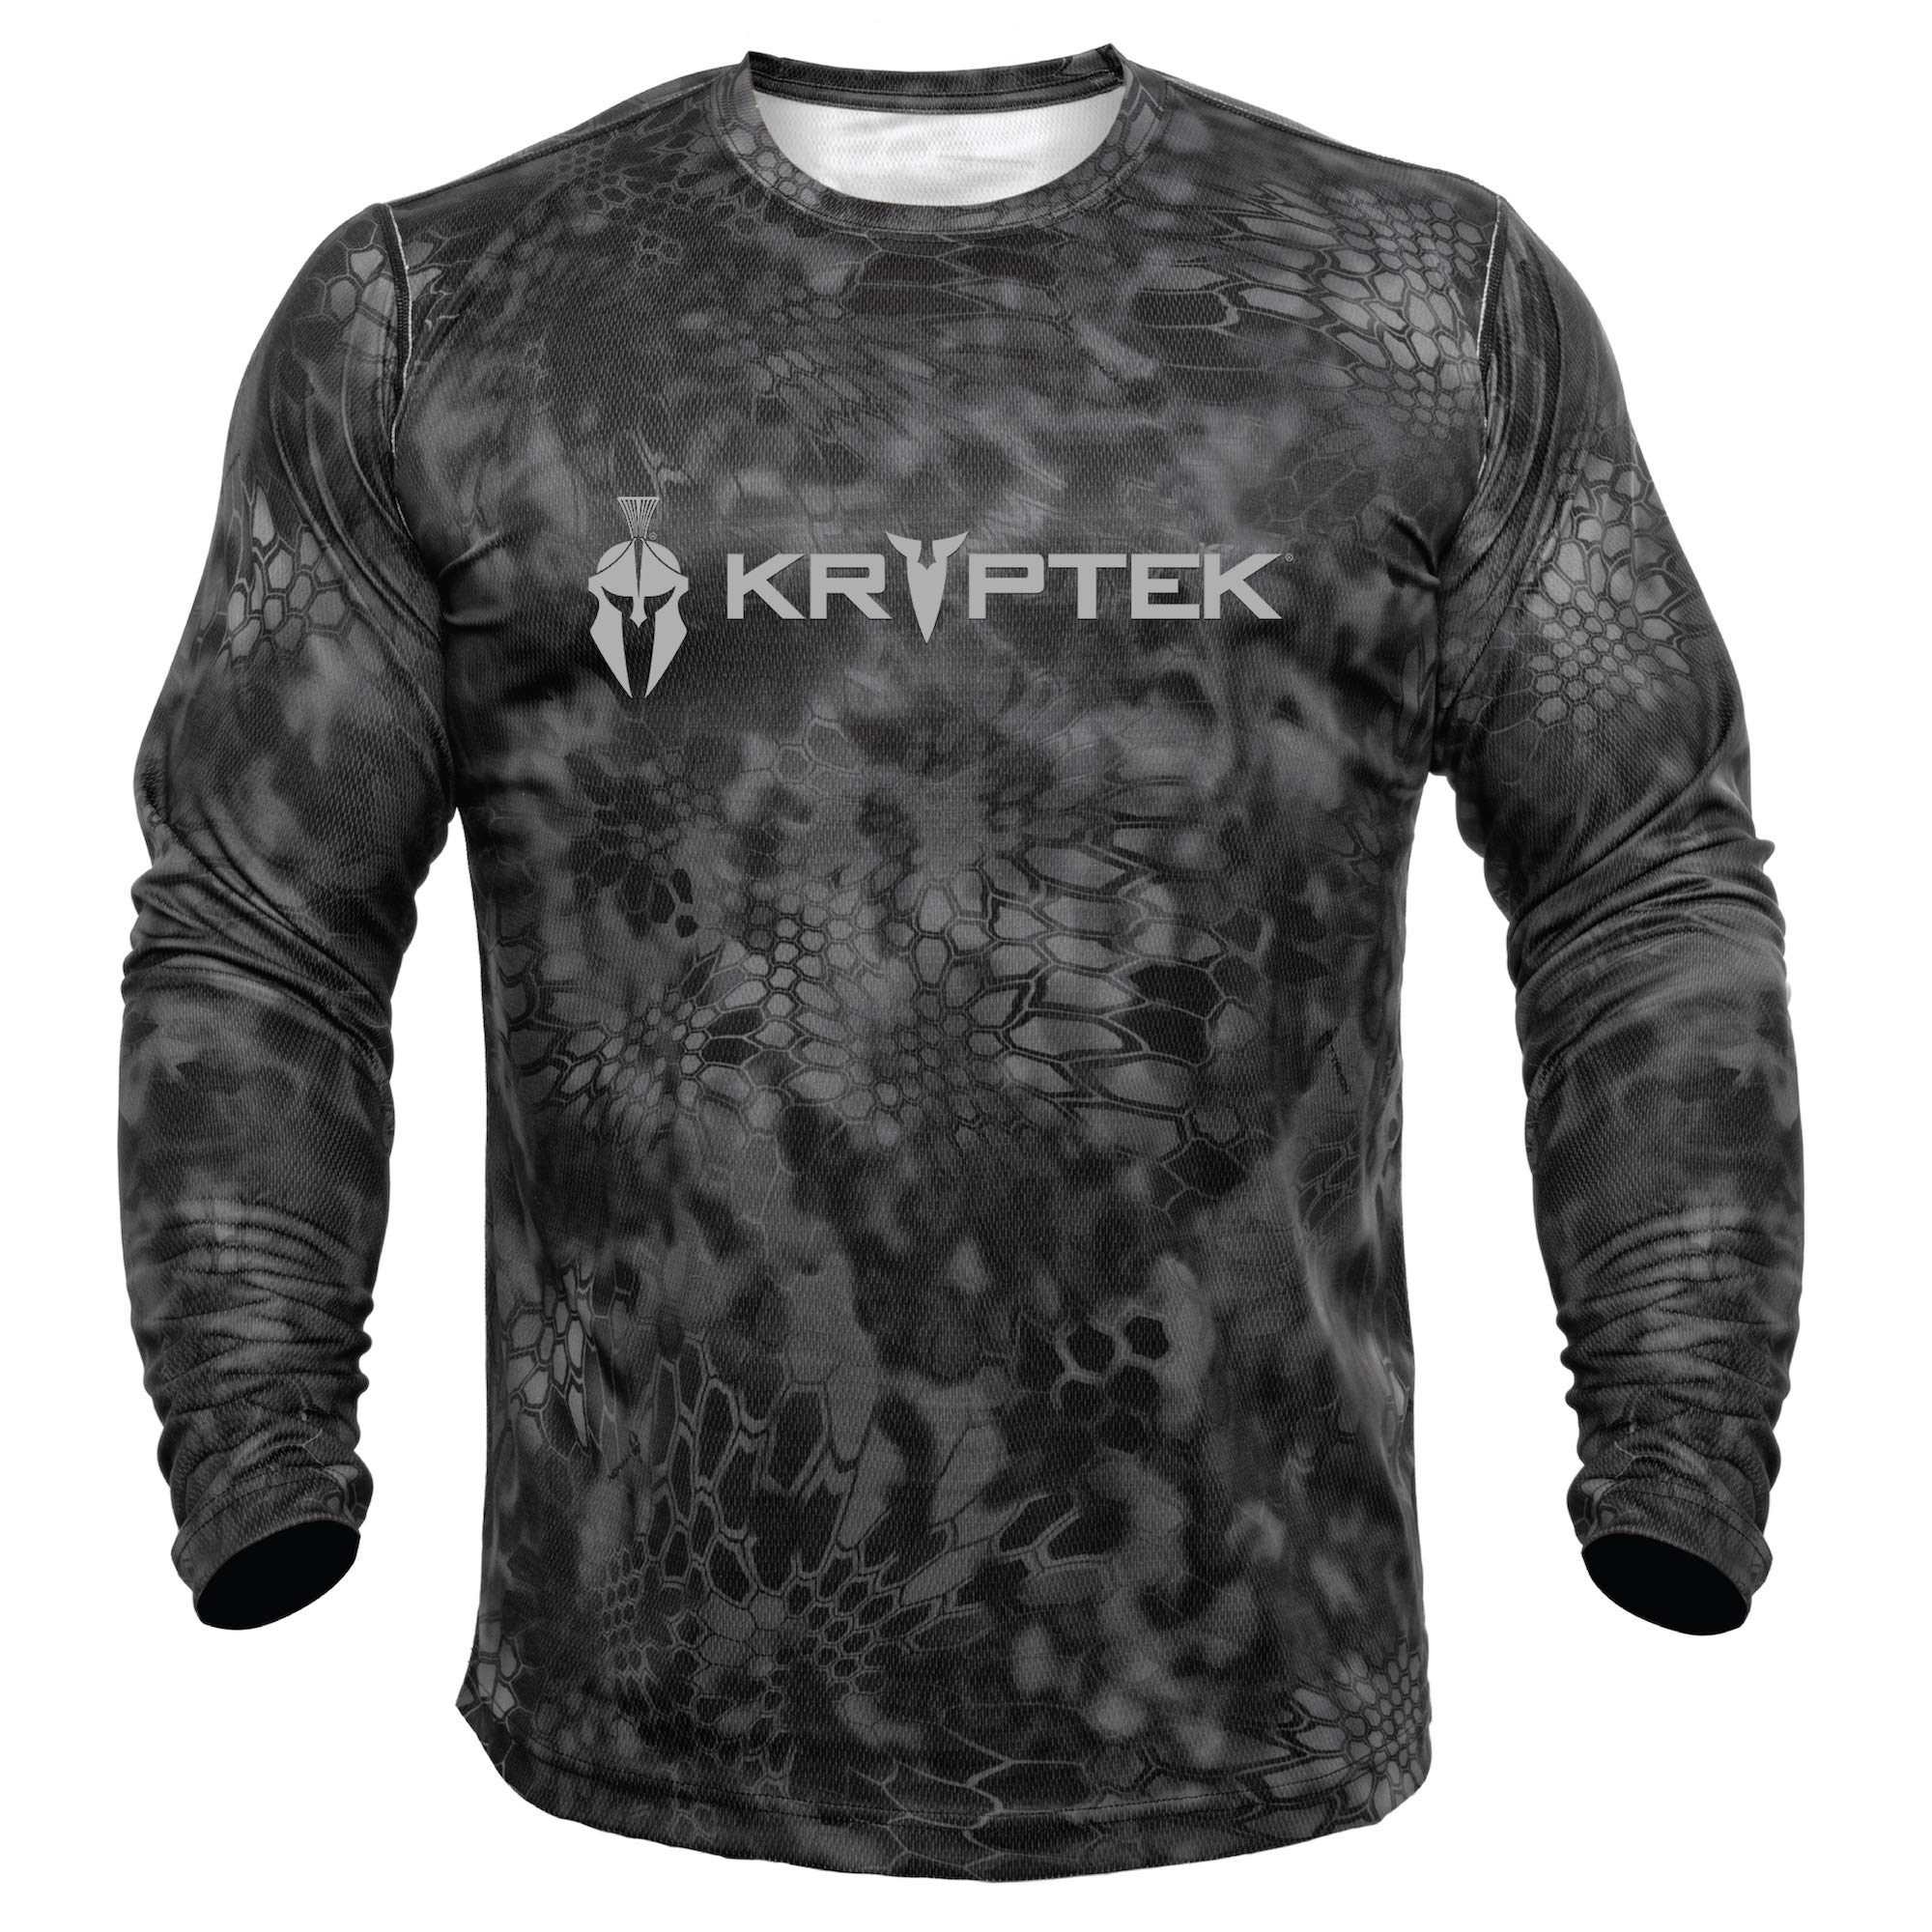 Kryptek Hyperion LS Crew with Logo - Long Sleeve Camo Hunting & Fishing Shirt (K-Ore Collection), Typhon, XL by Kryptek